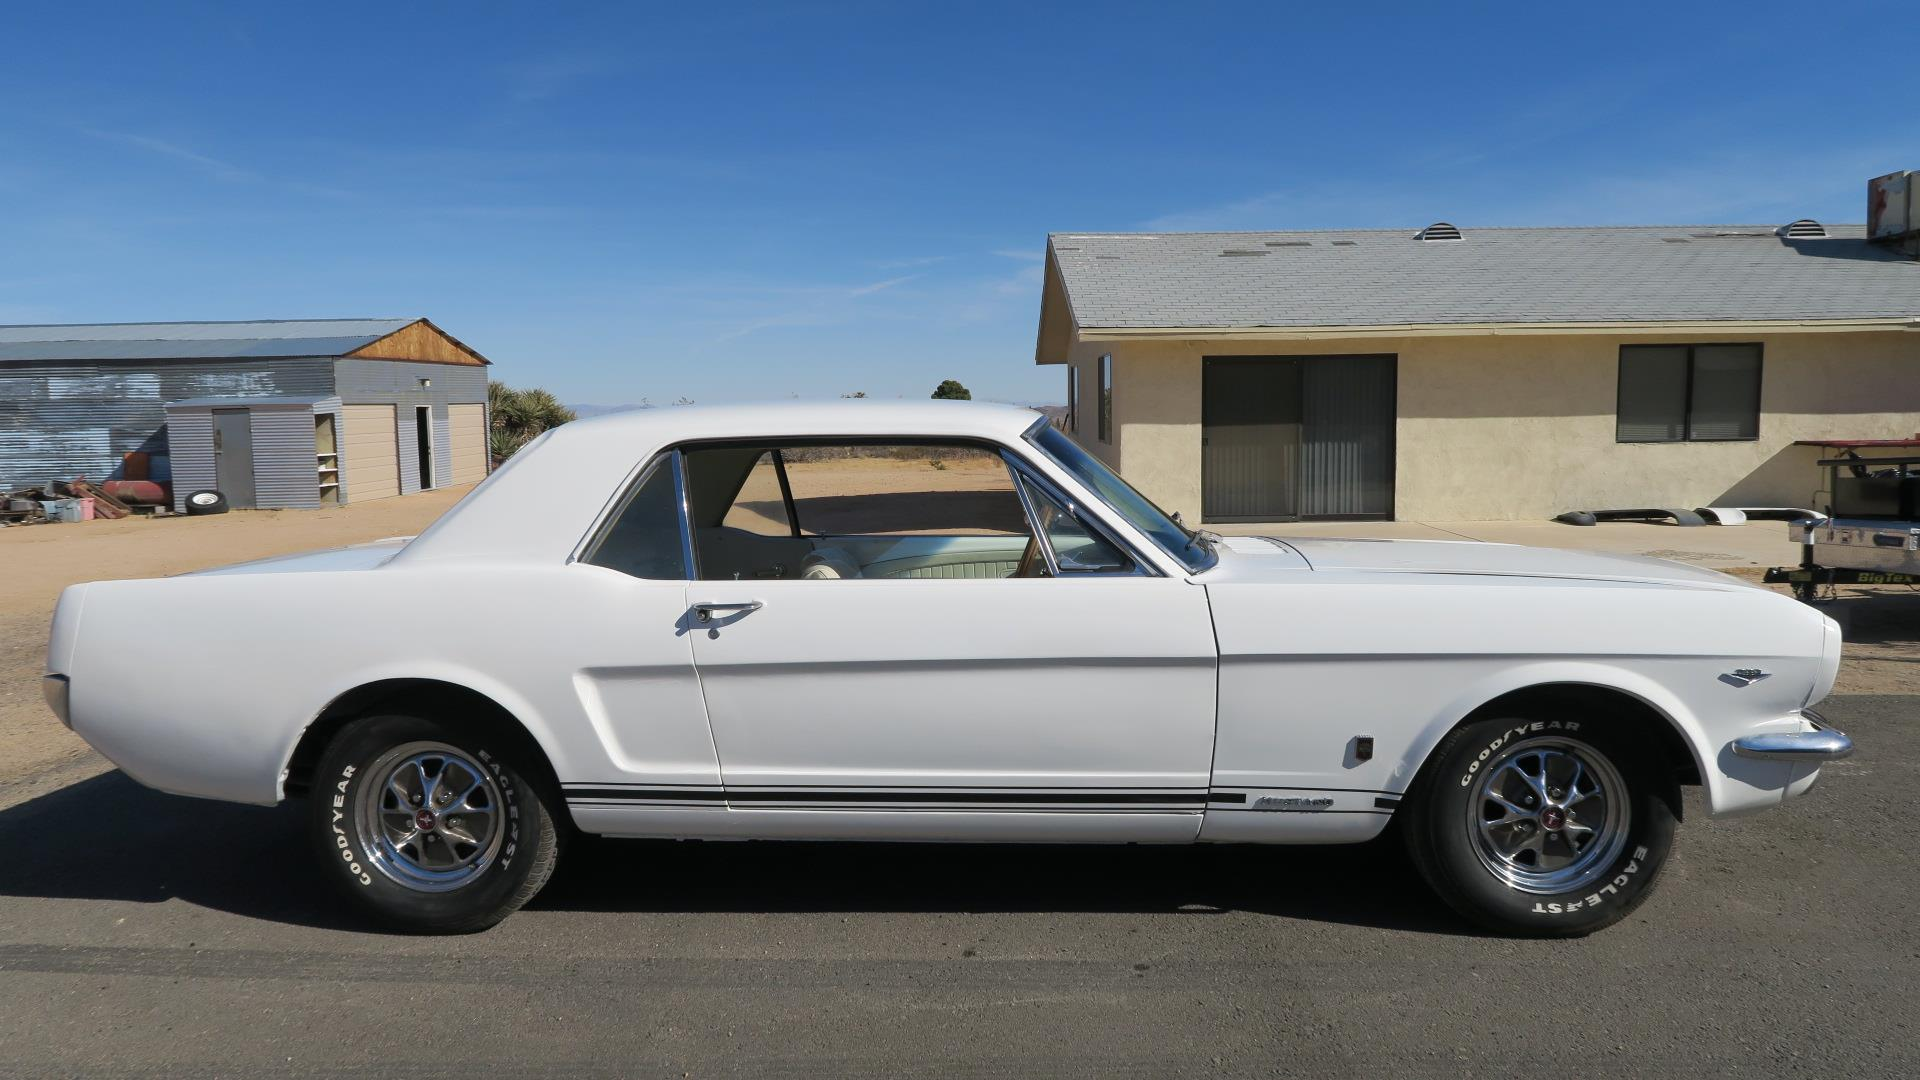 1965 mustang real gt a code 4 speed just restored rare color great driver